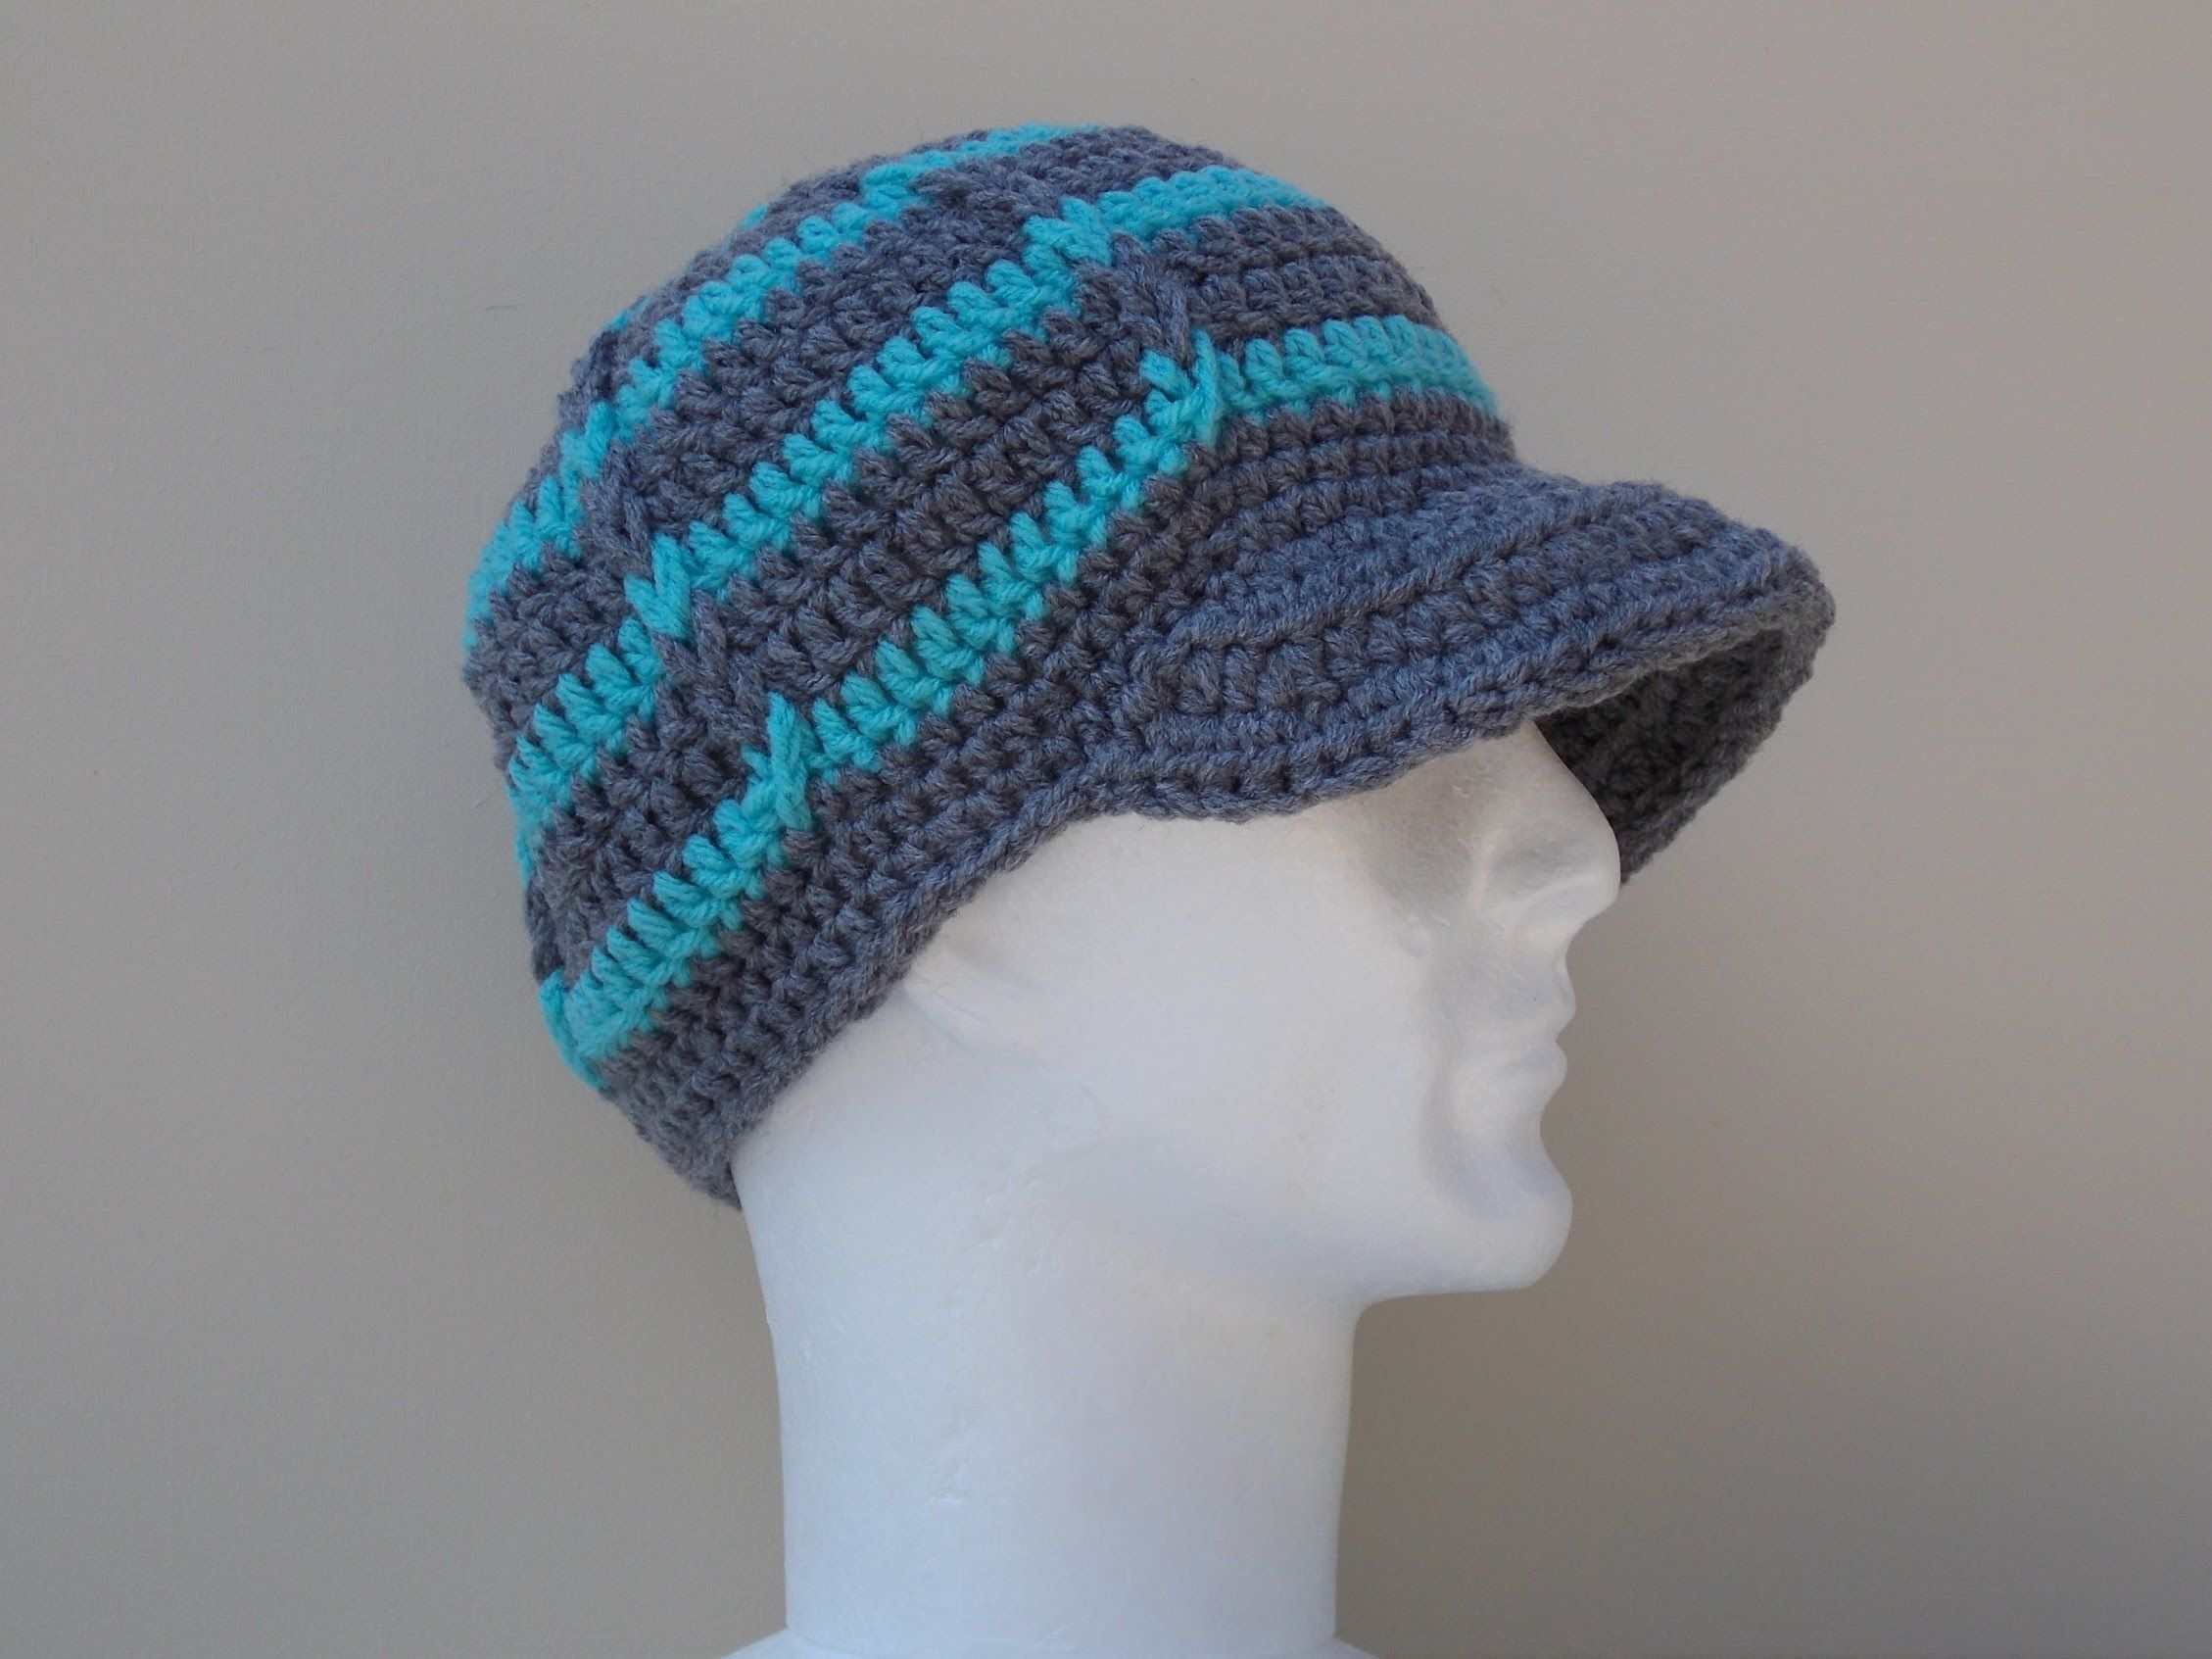 Hat brim peak crochet tutorial how to add a brim to a crochet hat brim peak crochet tutorial how to add a brim to a crochet hat bankloansurffo Gallery